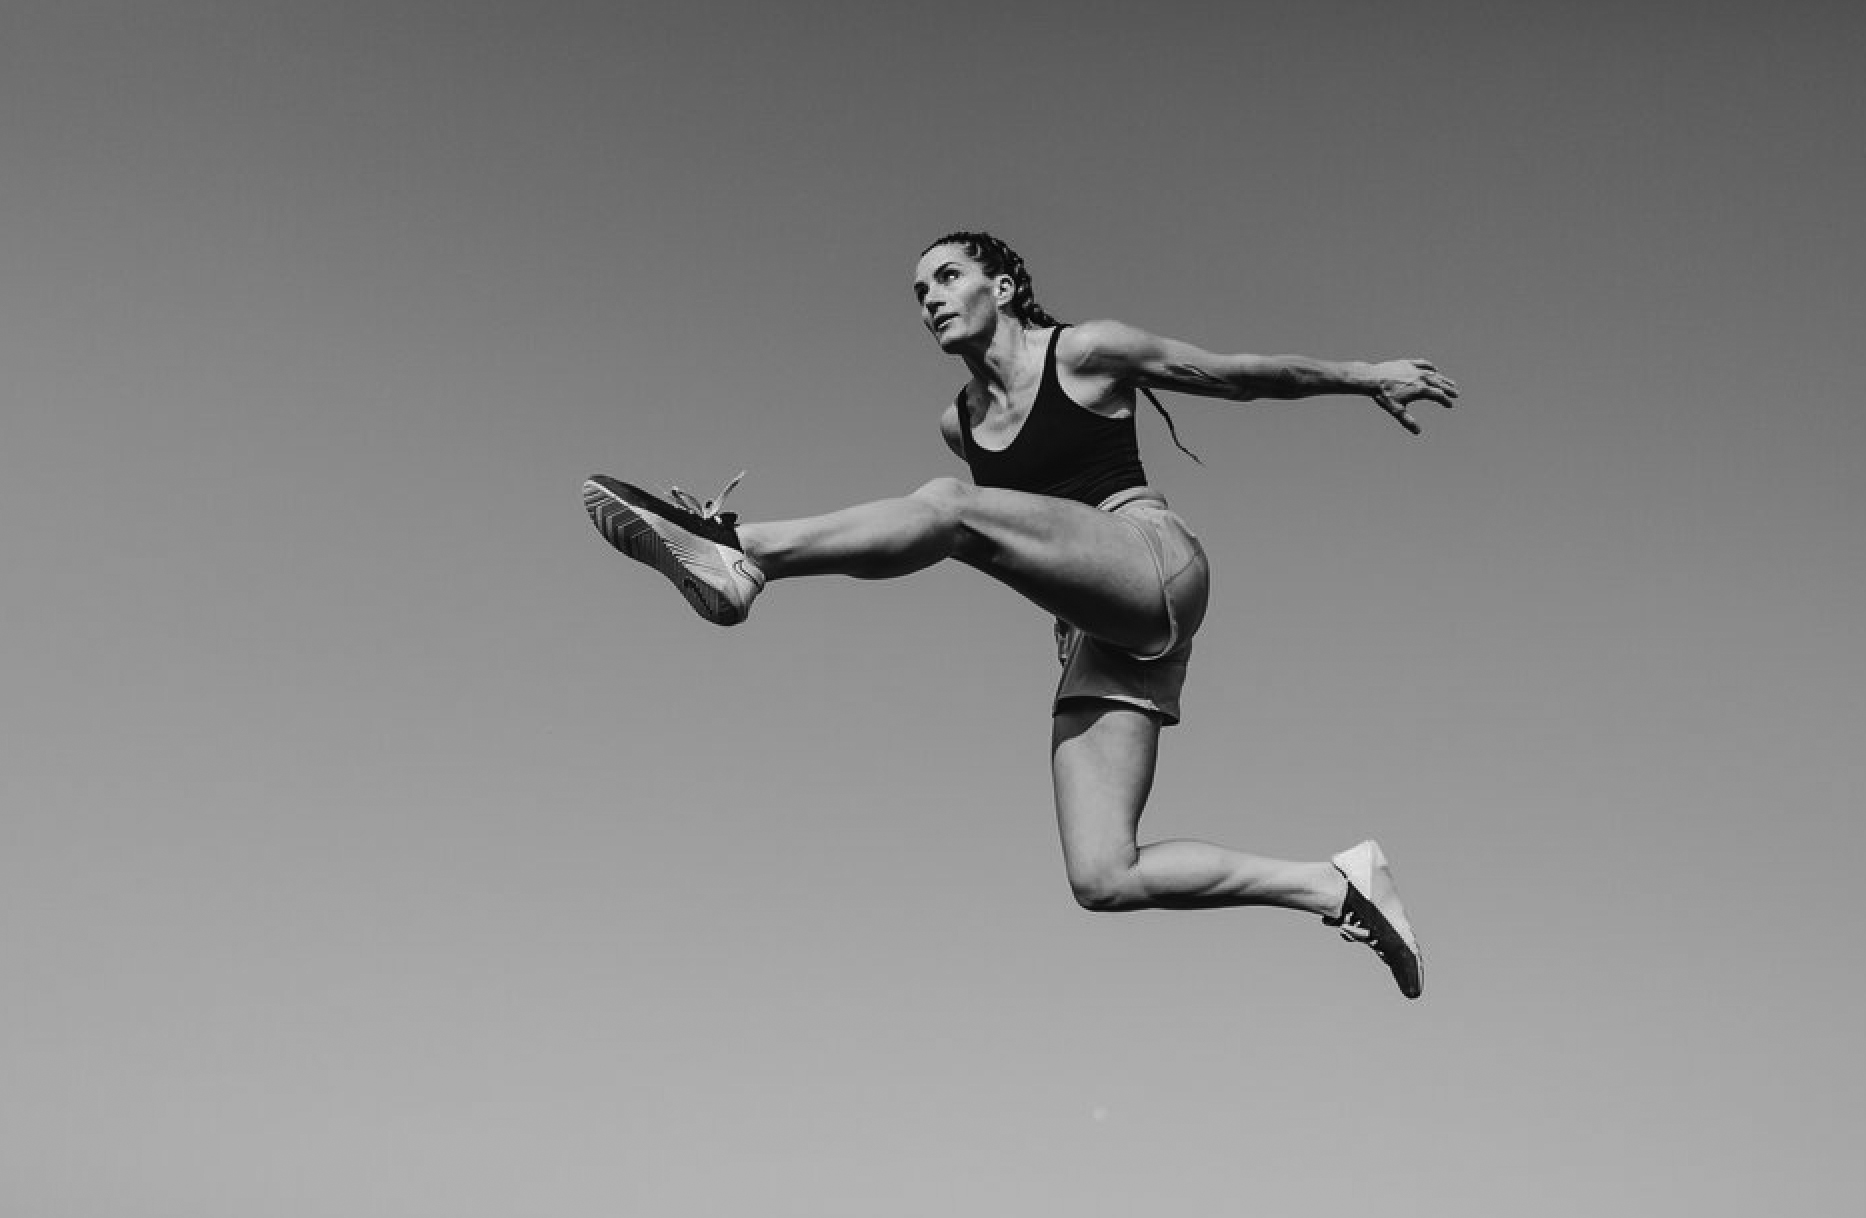 A shot from Keith's recent personal project about trampolining